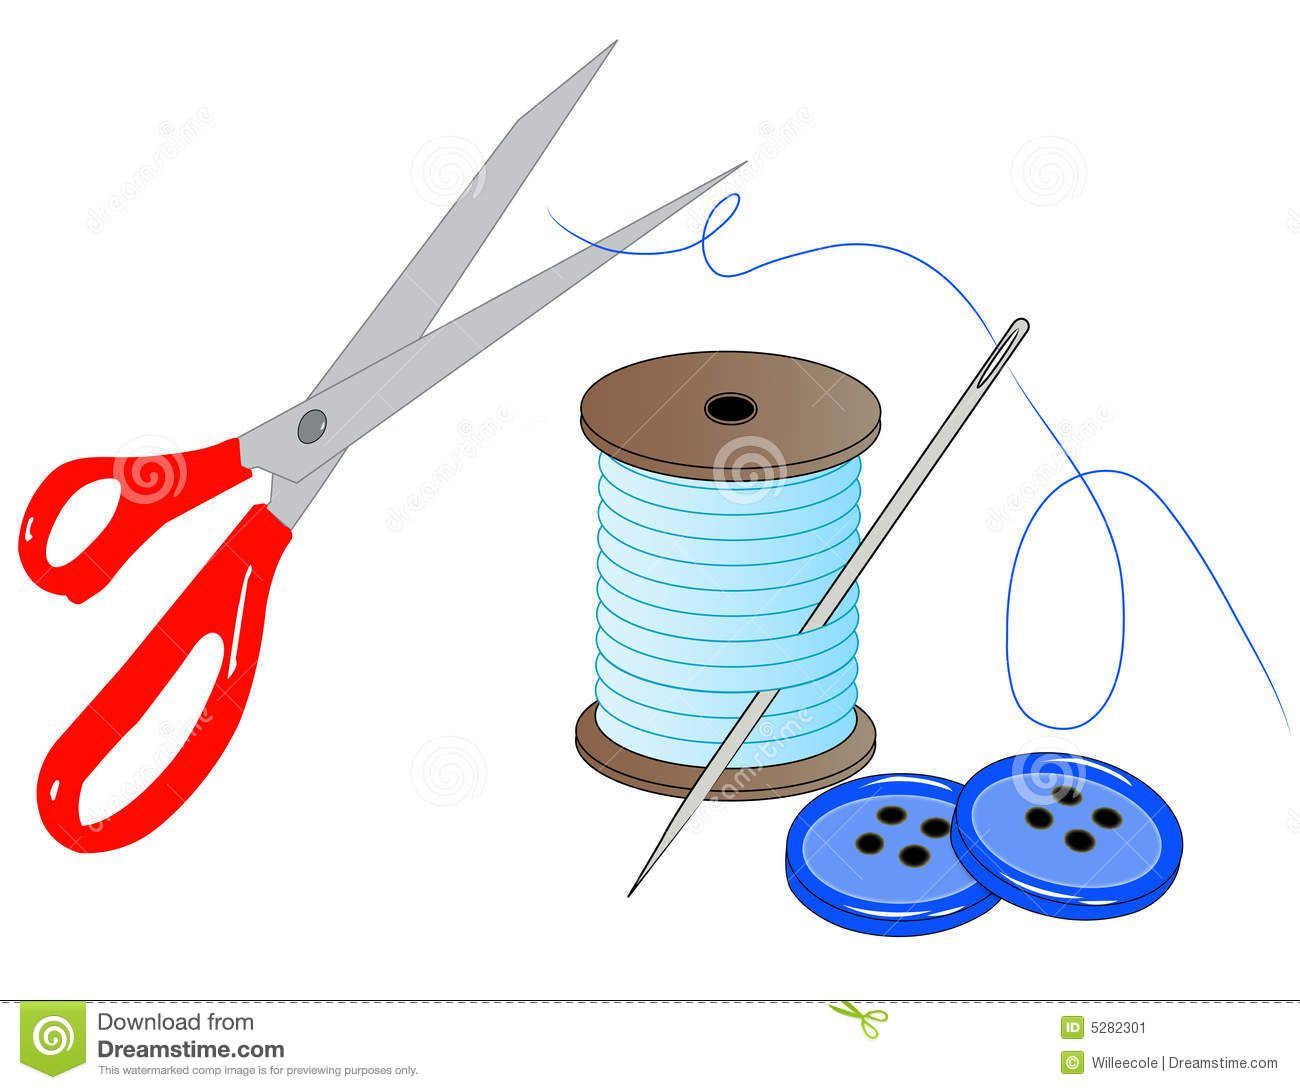 Sewing clipart sewing material. Kit clip art accessories